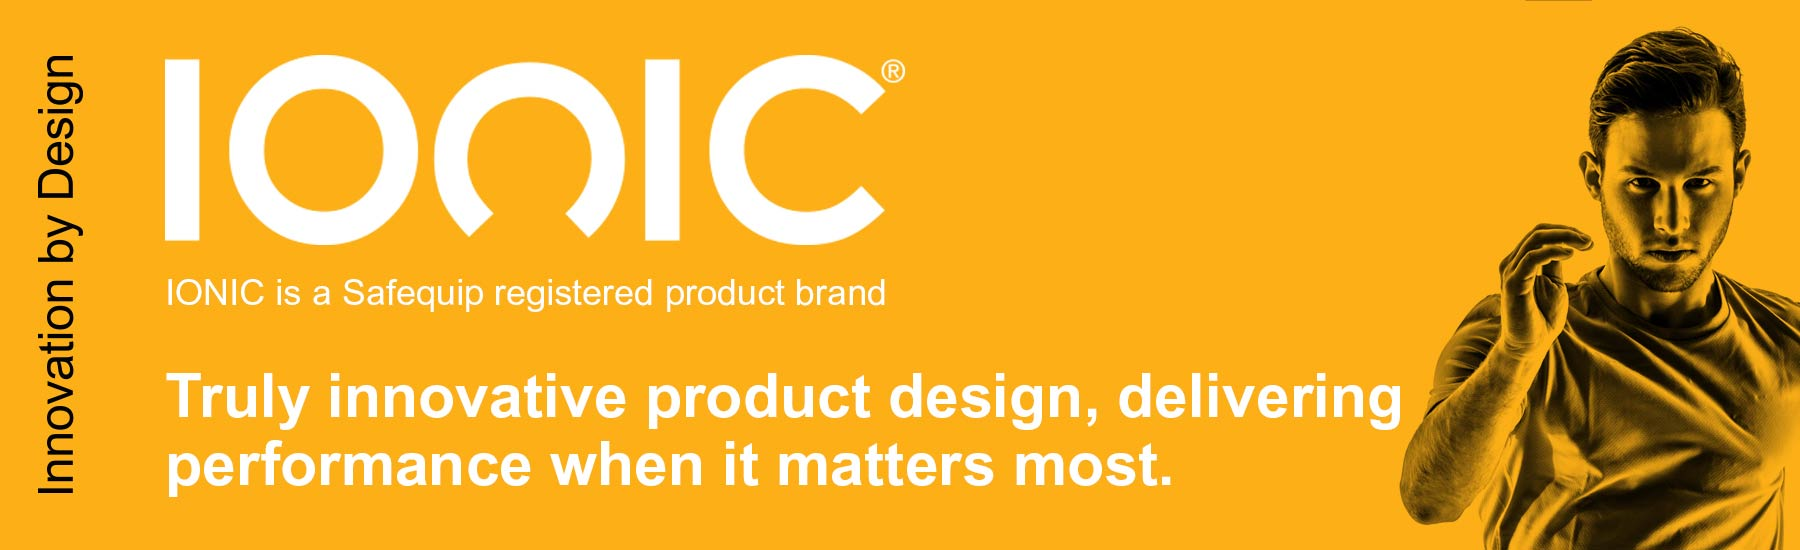 Ionic is a safequip registered brand